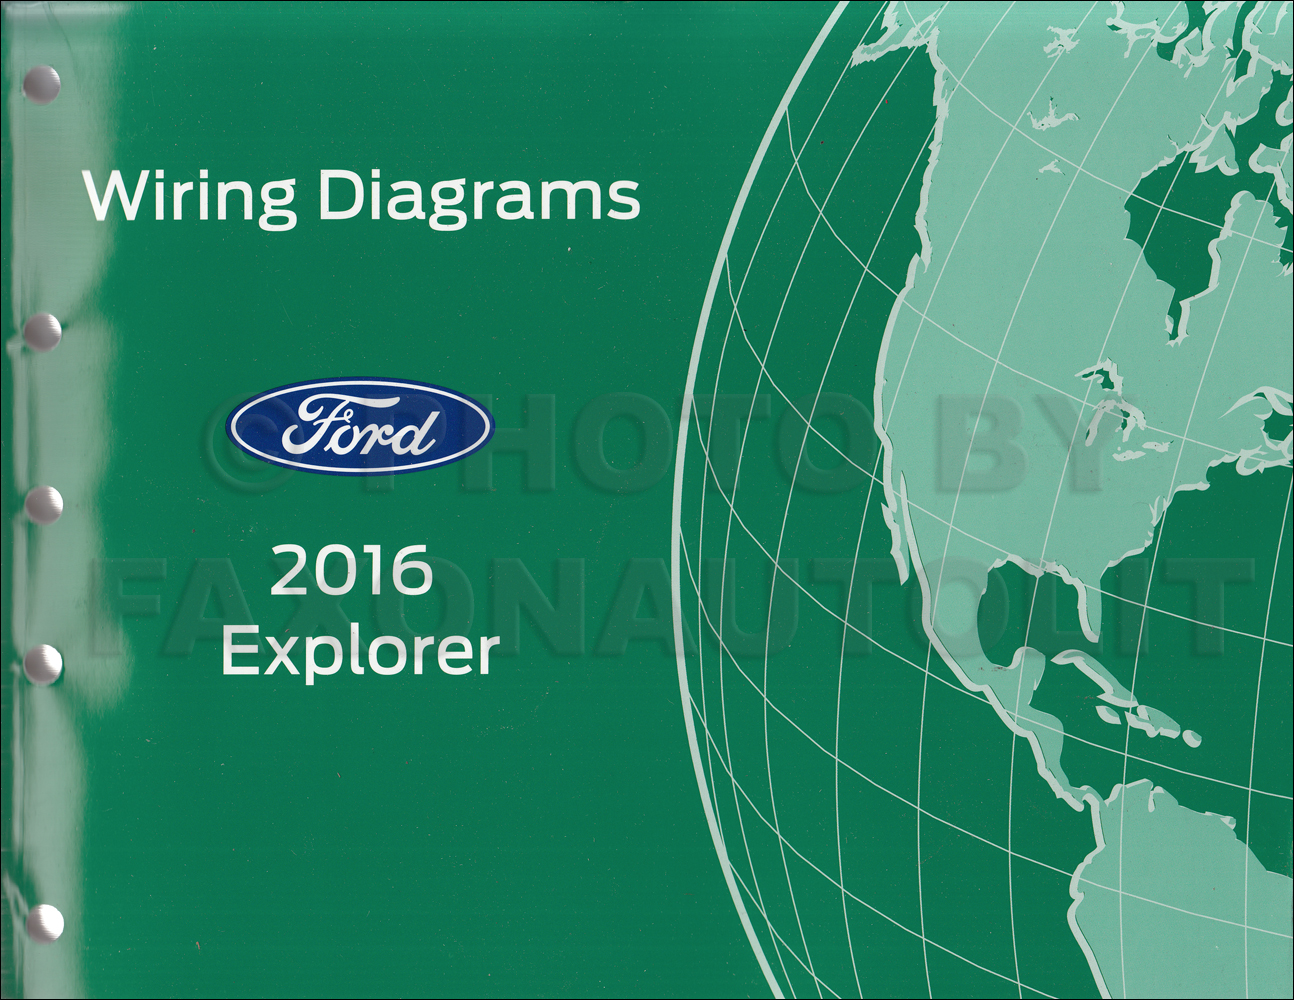 hight resolution of ford explorer wiring diagrams wiring diagram sheet wiring diagram ford explorer wiring diagram ford explorer